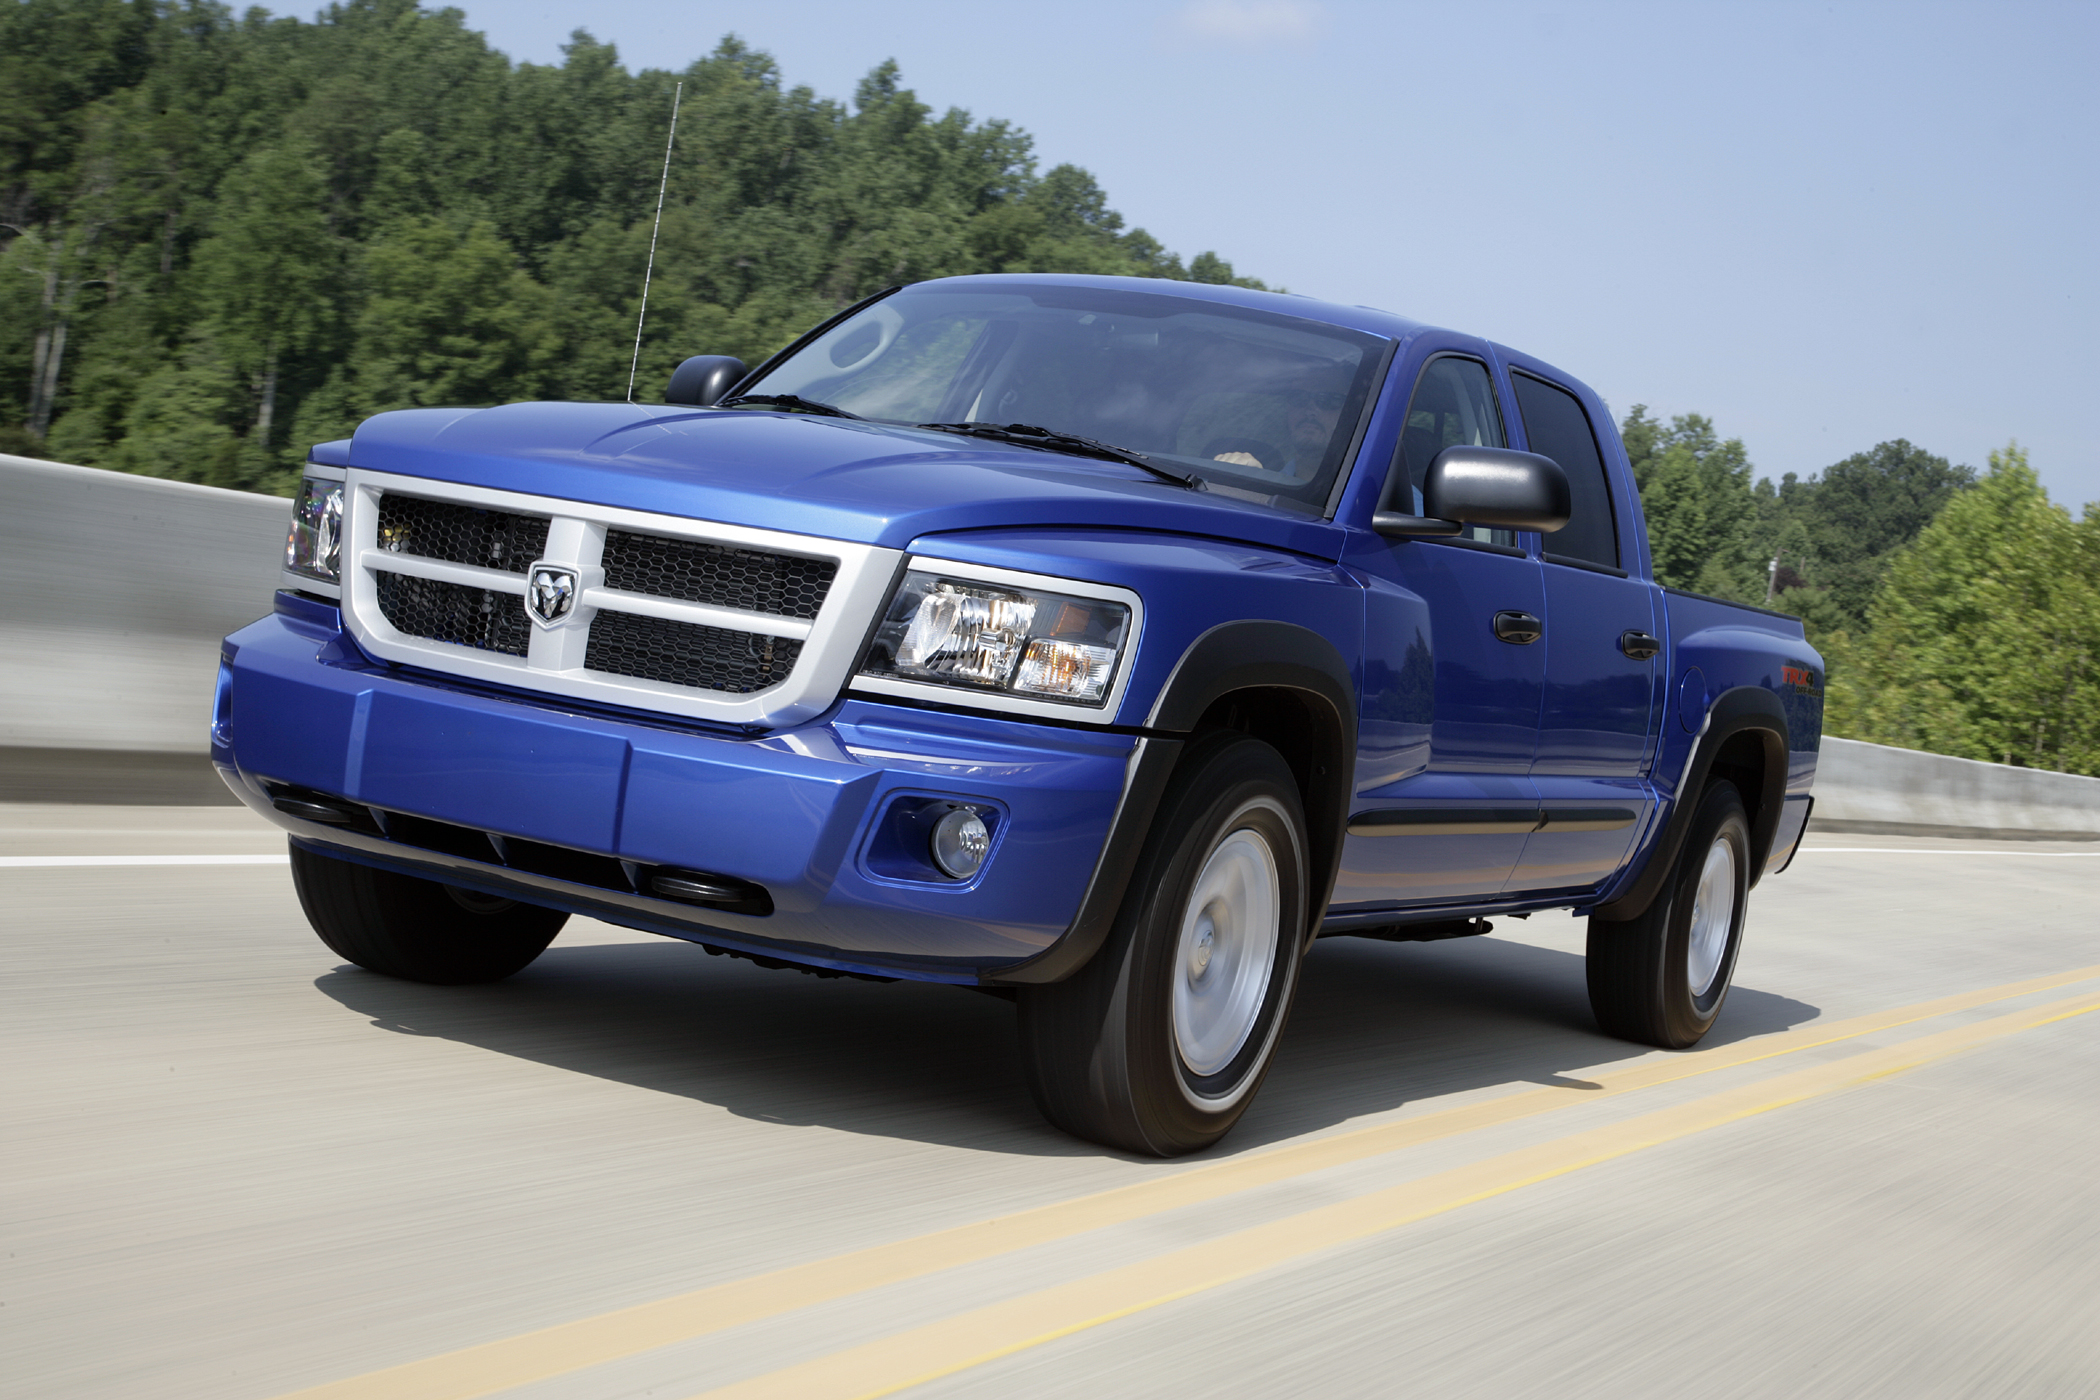 Manufacturer photo: Dodge's 2010 Dakota TRX4 4x4 crew-cab pickup is off-road